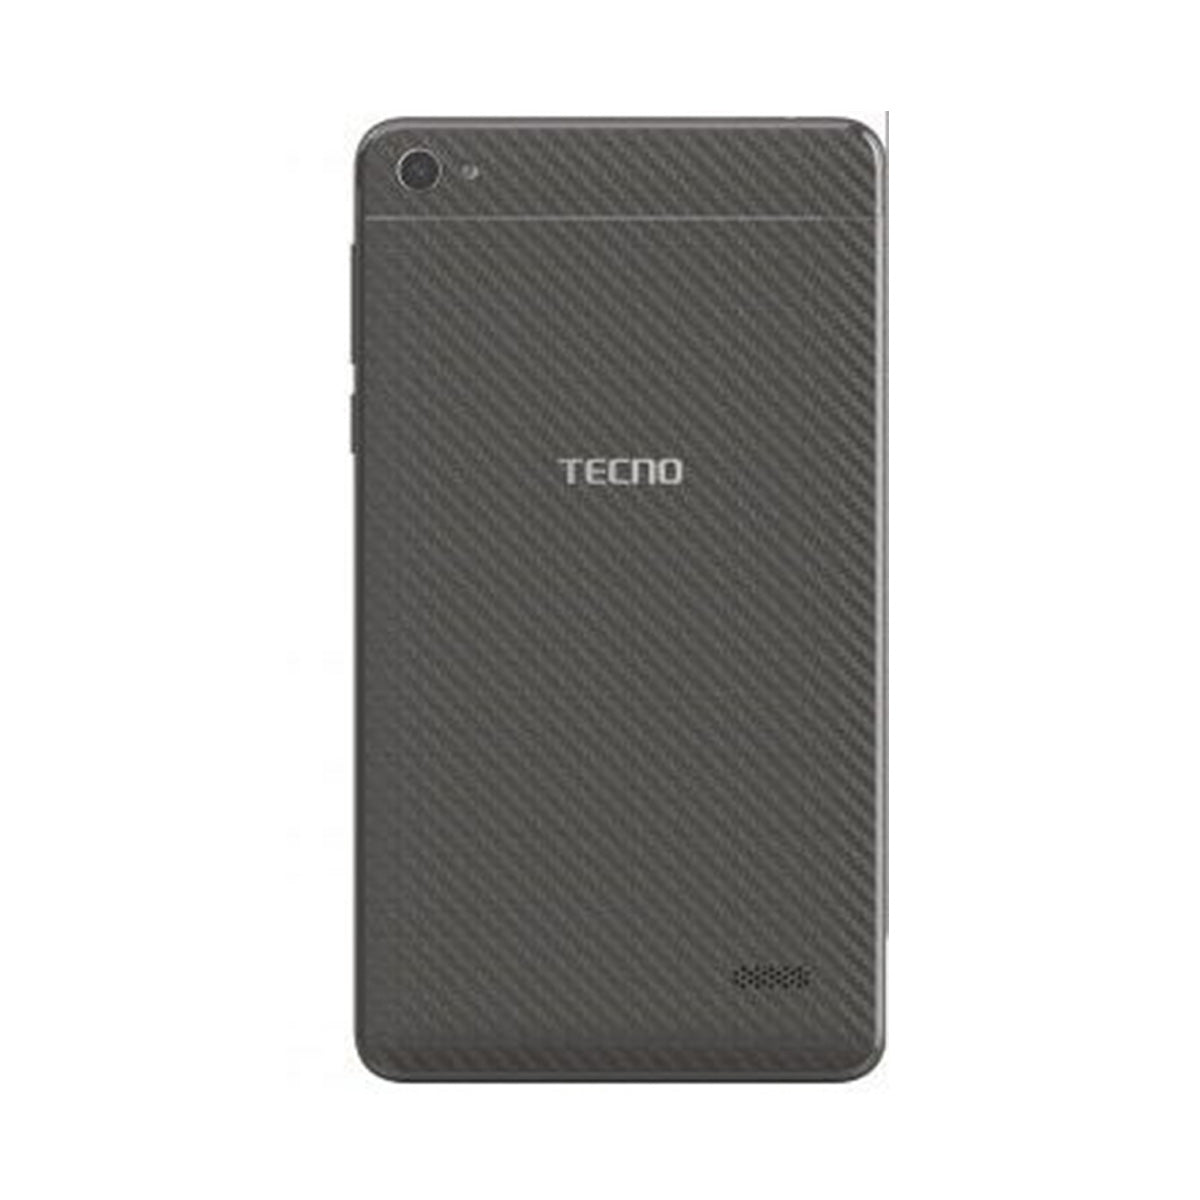 Tecno T701 8GB + 1GB RAM Dual Micro SIM Tablet - Shark Grey